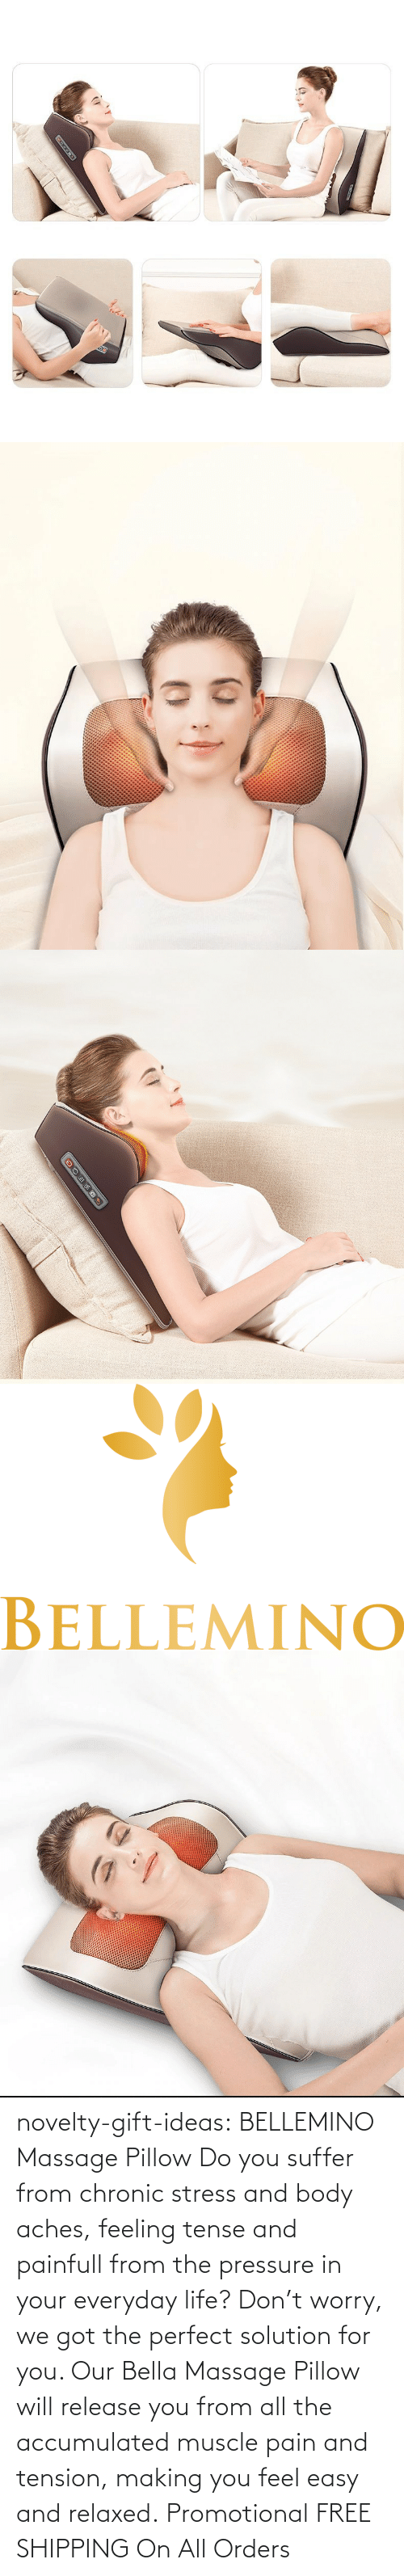 Body: novelty-gift-ideas:   BELLEMINO Massage Pillow     Do you suffer from chronic stress and body aches, feeling tense and painfull from the pressure in your everyday life? Don't worry, we got the perfect solution for you. Our Bella Massage Pillow will release you from all the accumulated muscle pain and tension, making you feel easy and relaxed.     Promotional FREE SHIPPING On All Orders